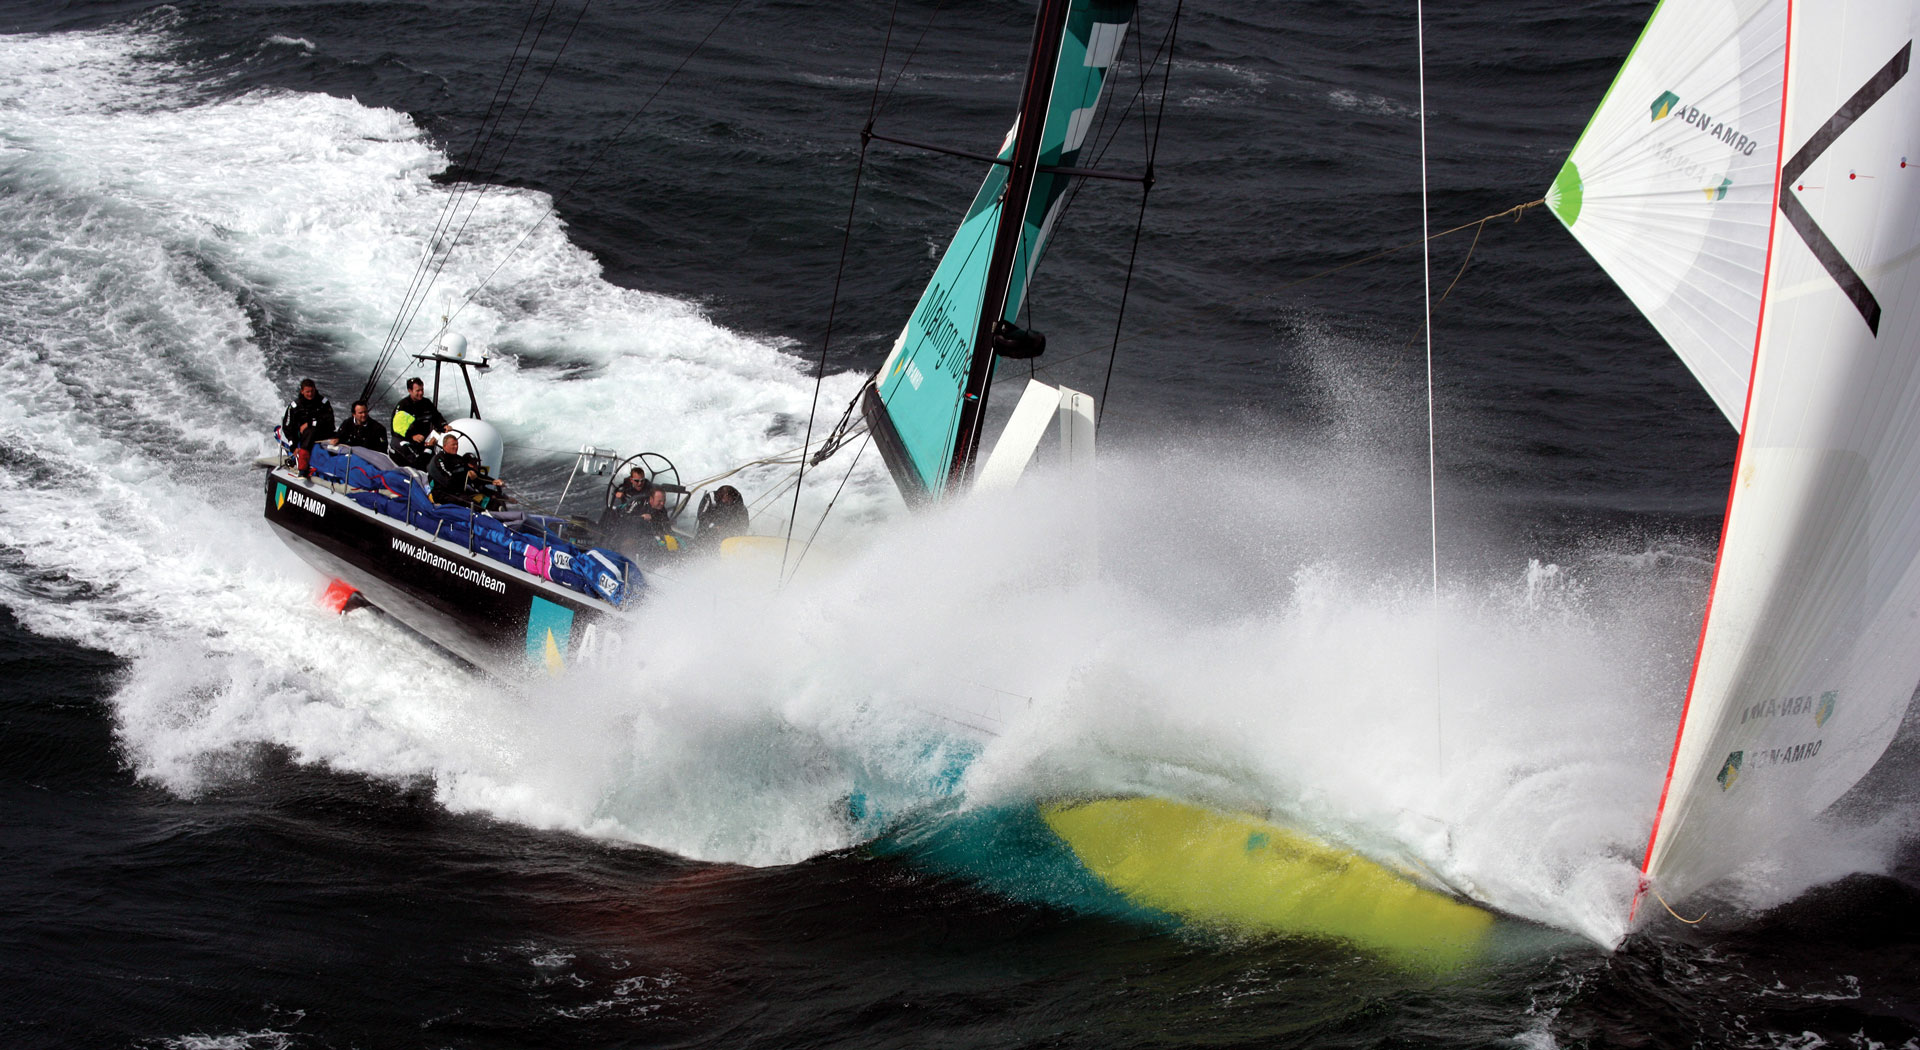 sailboat during Volvo ocean race crashing threw the water